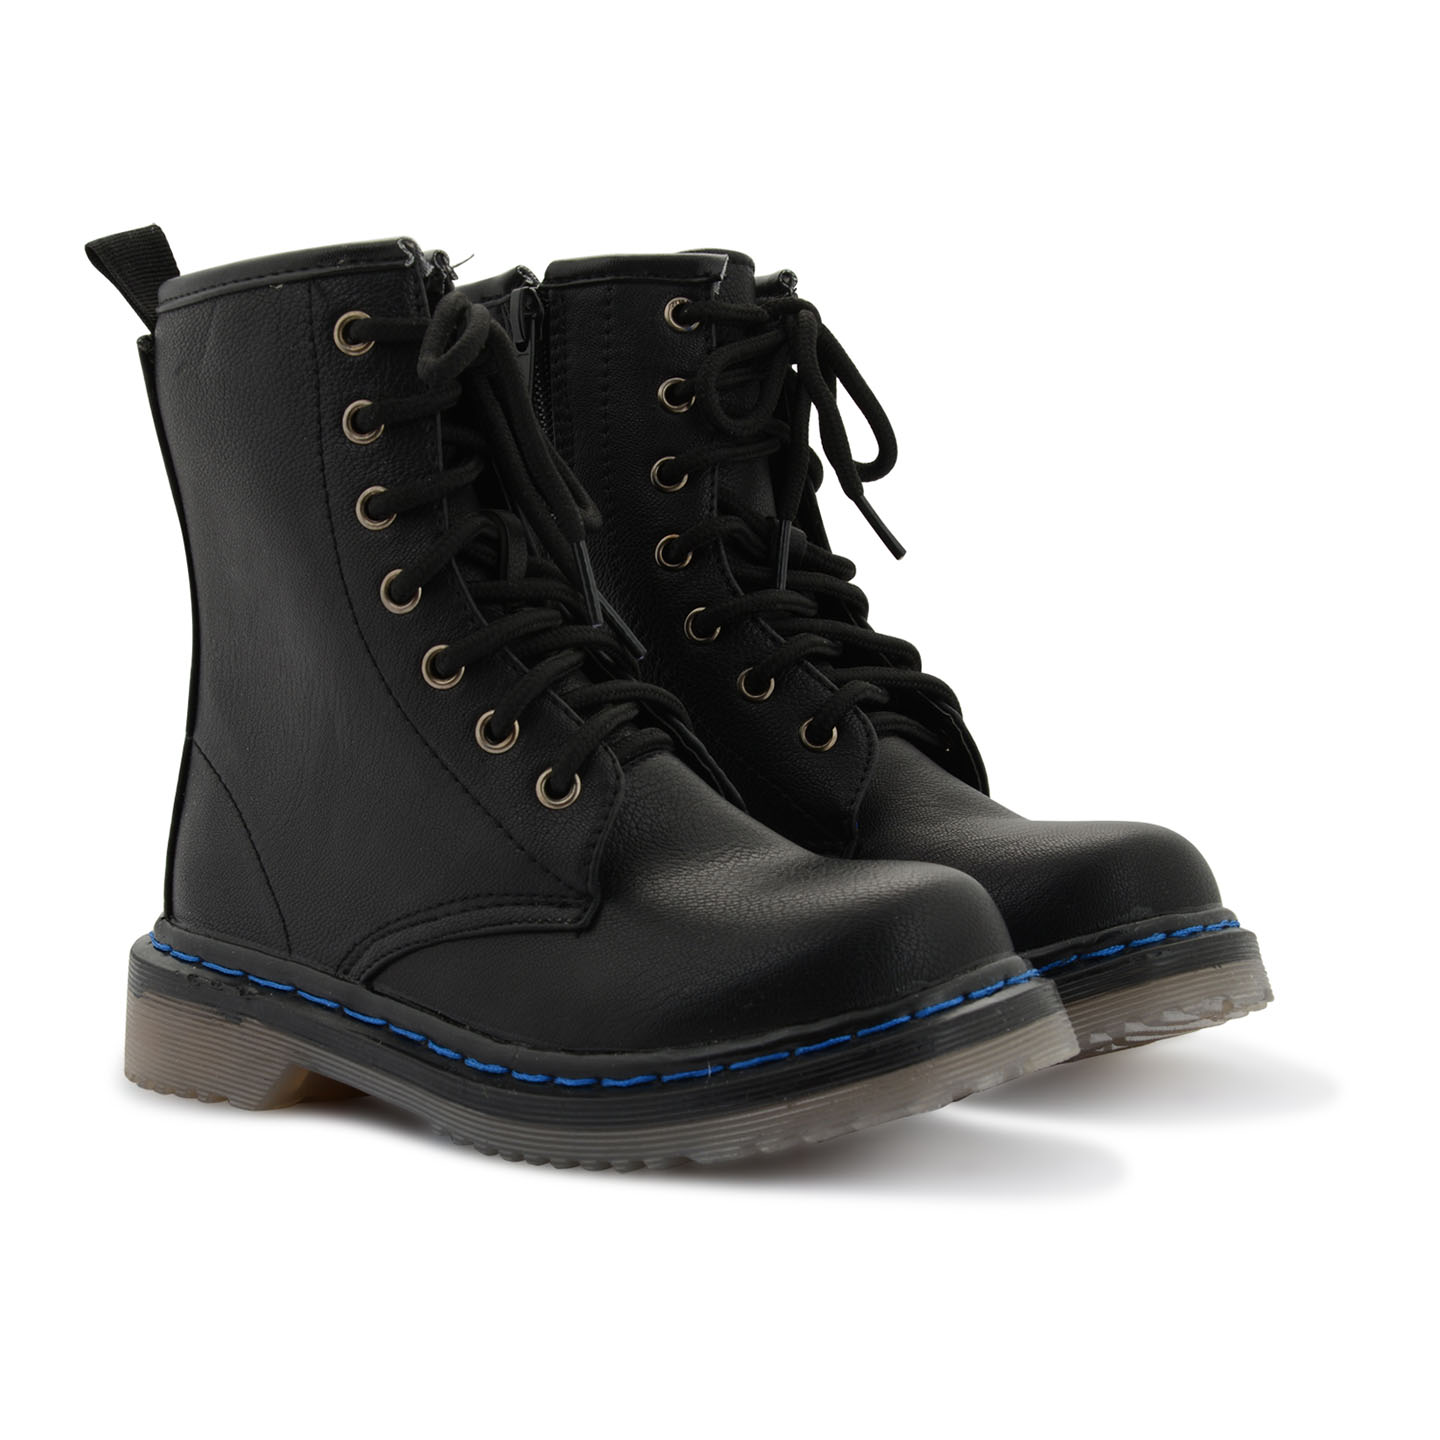 Cute Combat Boots For Juniors wMuy13qi